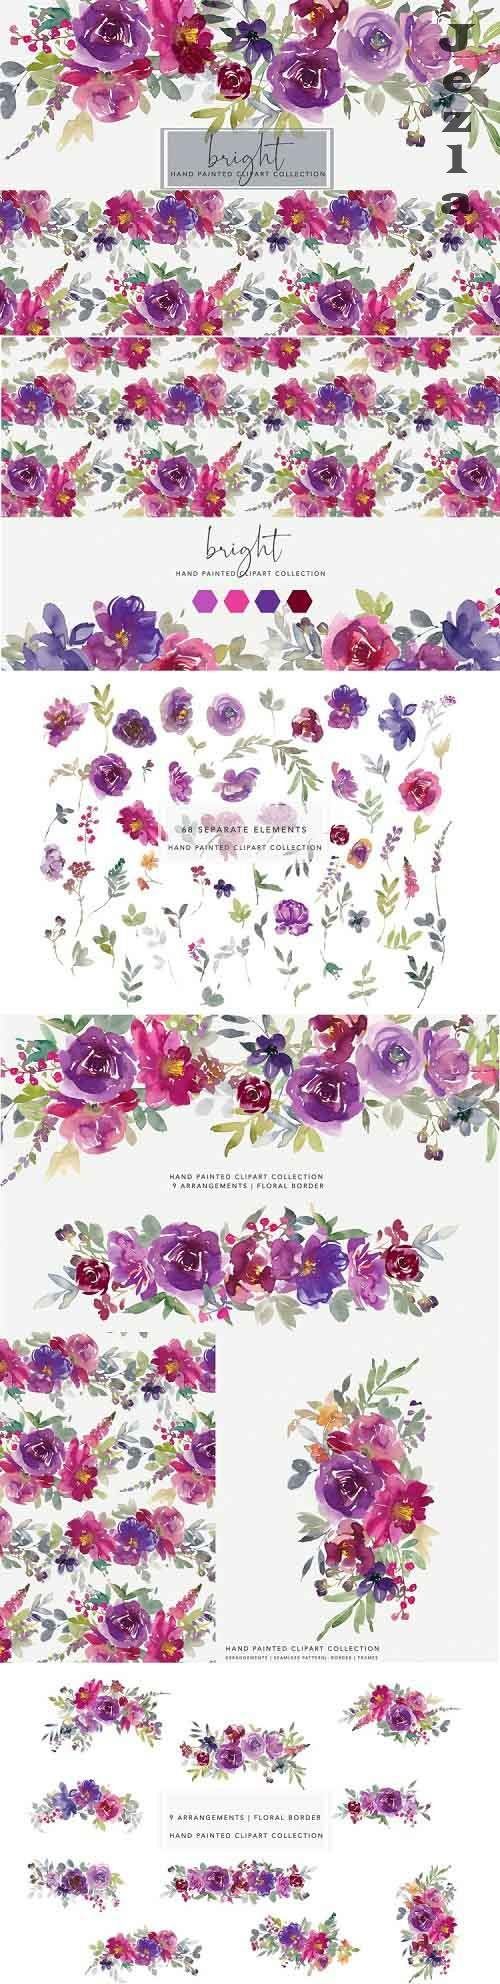 Purple and Magenta Watercolor Floral Clipart Set - 730786